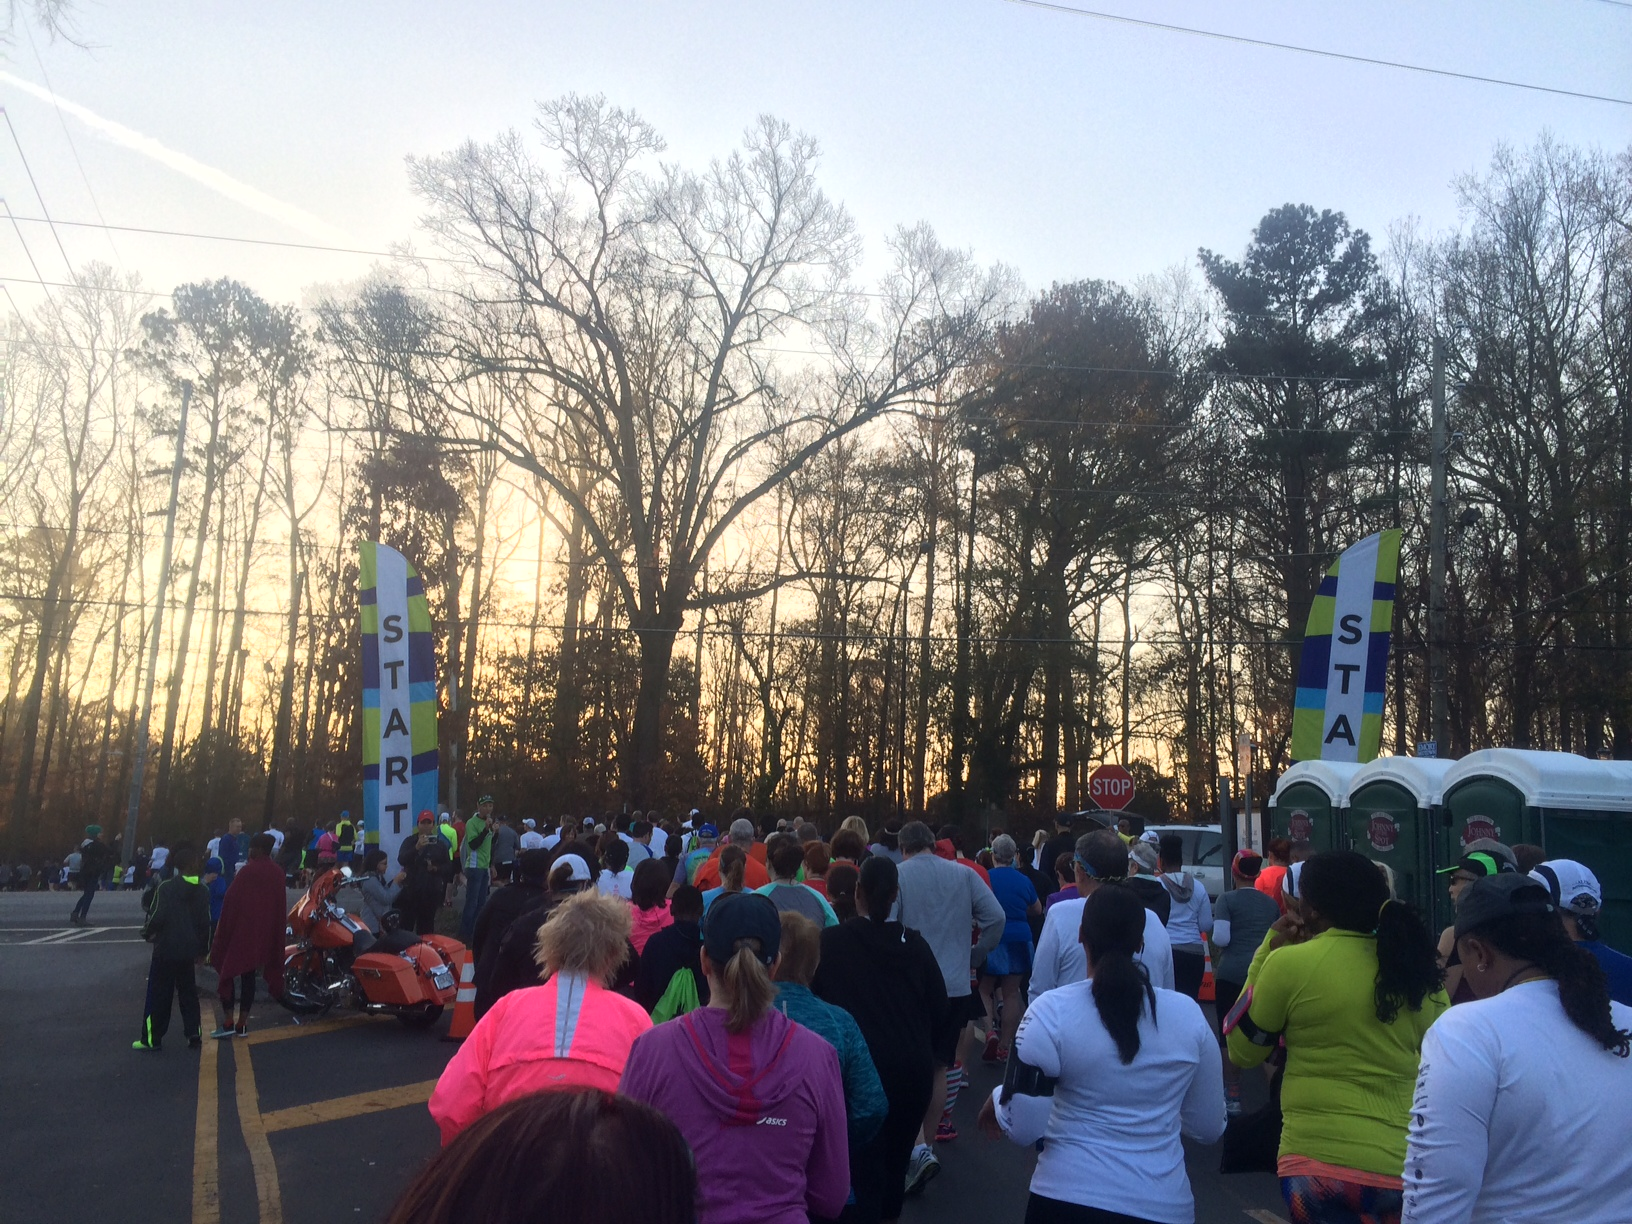 The starting line of Barb's 5k.